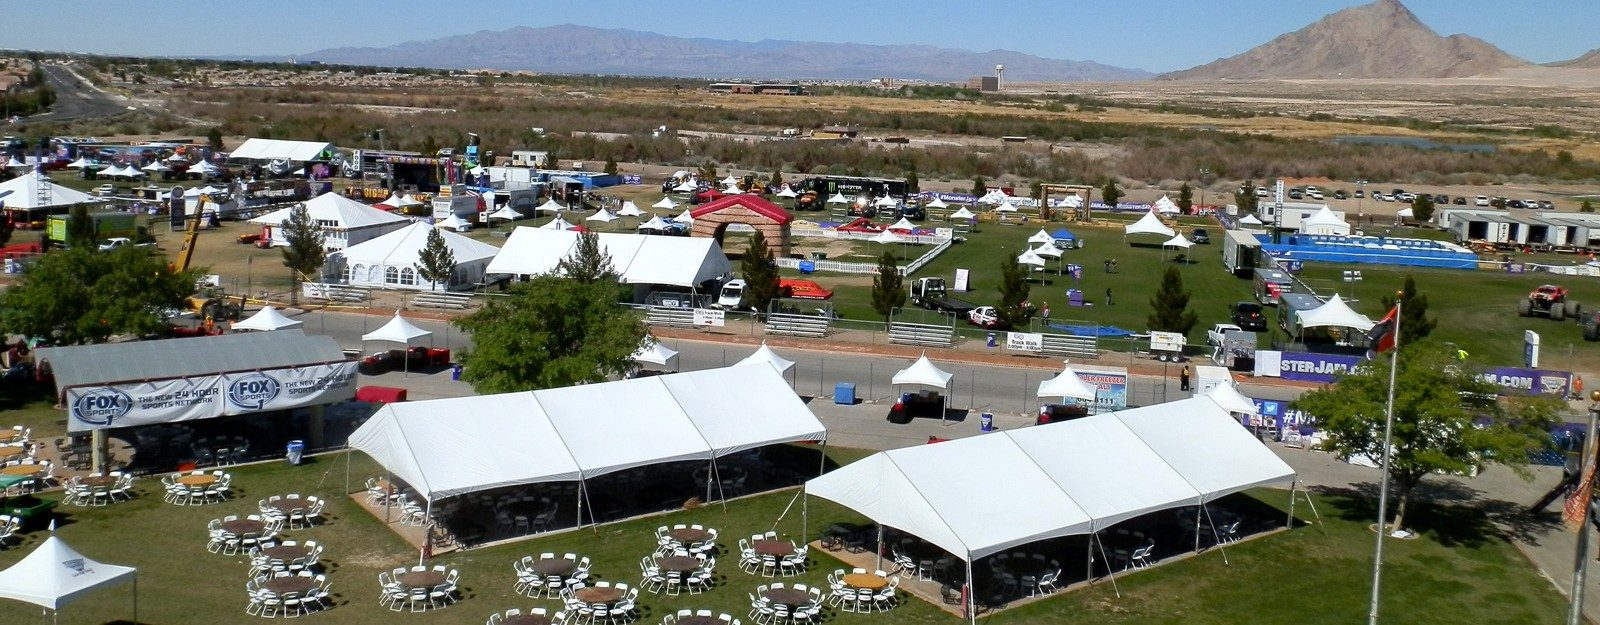 RSVP Party Rentals – Nevada's largest event rental company